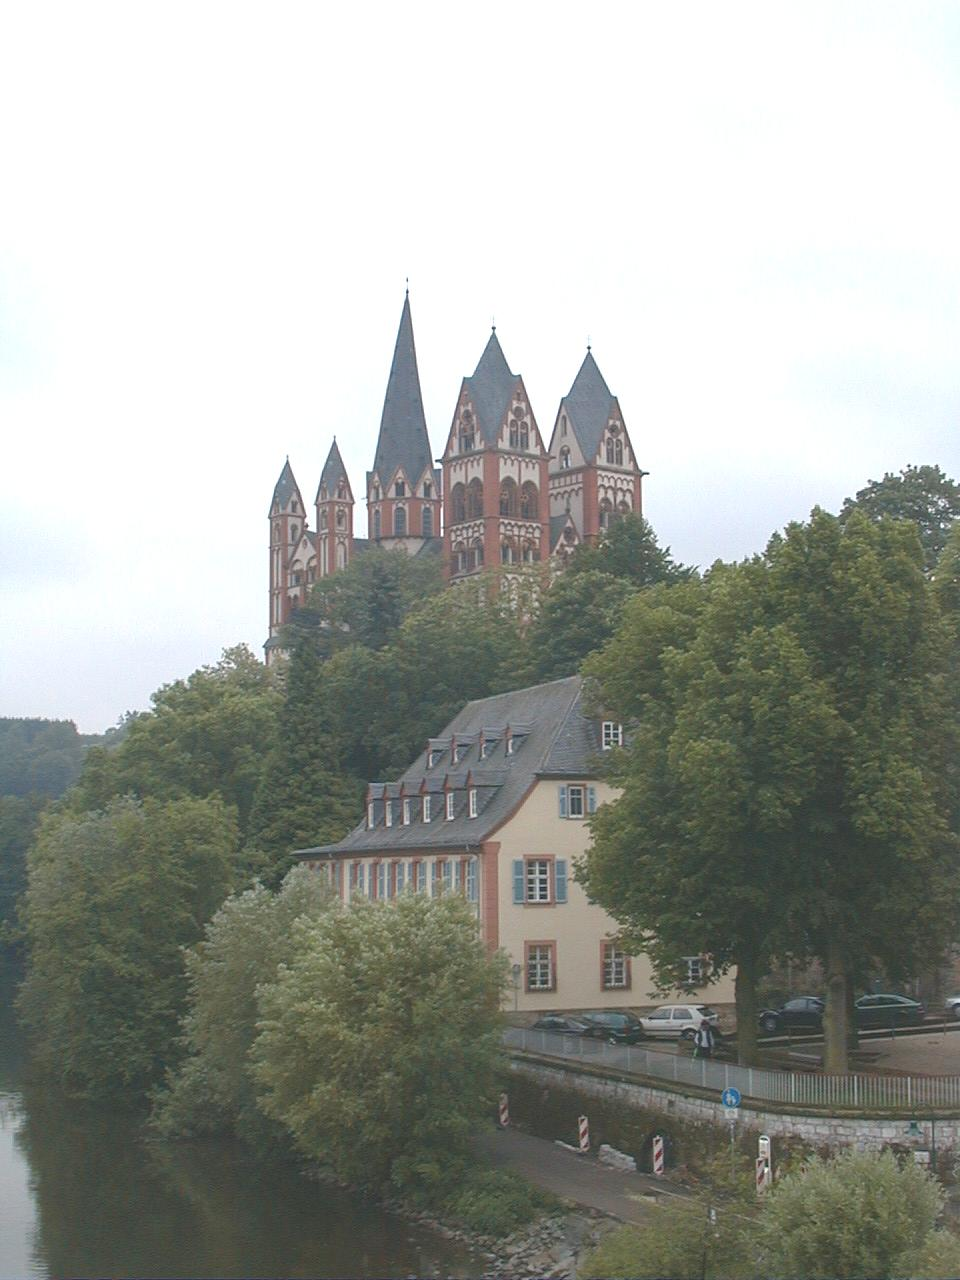 Limburg an der Lahn (Limburg on the Lahn river) is a small German town, the capital of the district Limburg-Weilburg in the west of Hesse. Population 35,500, geographical position 50��23�� N 8��4�� E . The city was first mentioned in 910.